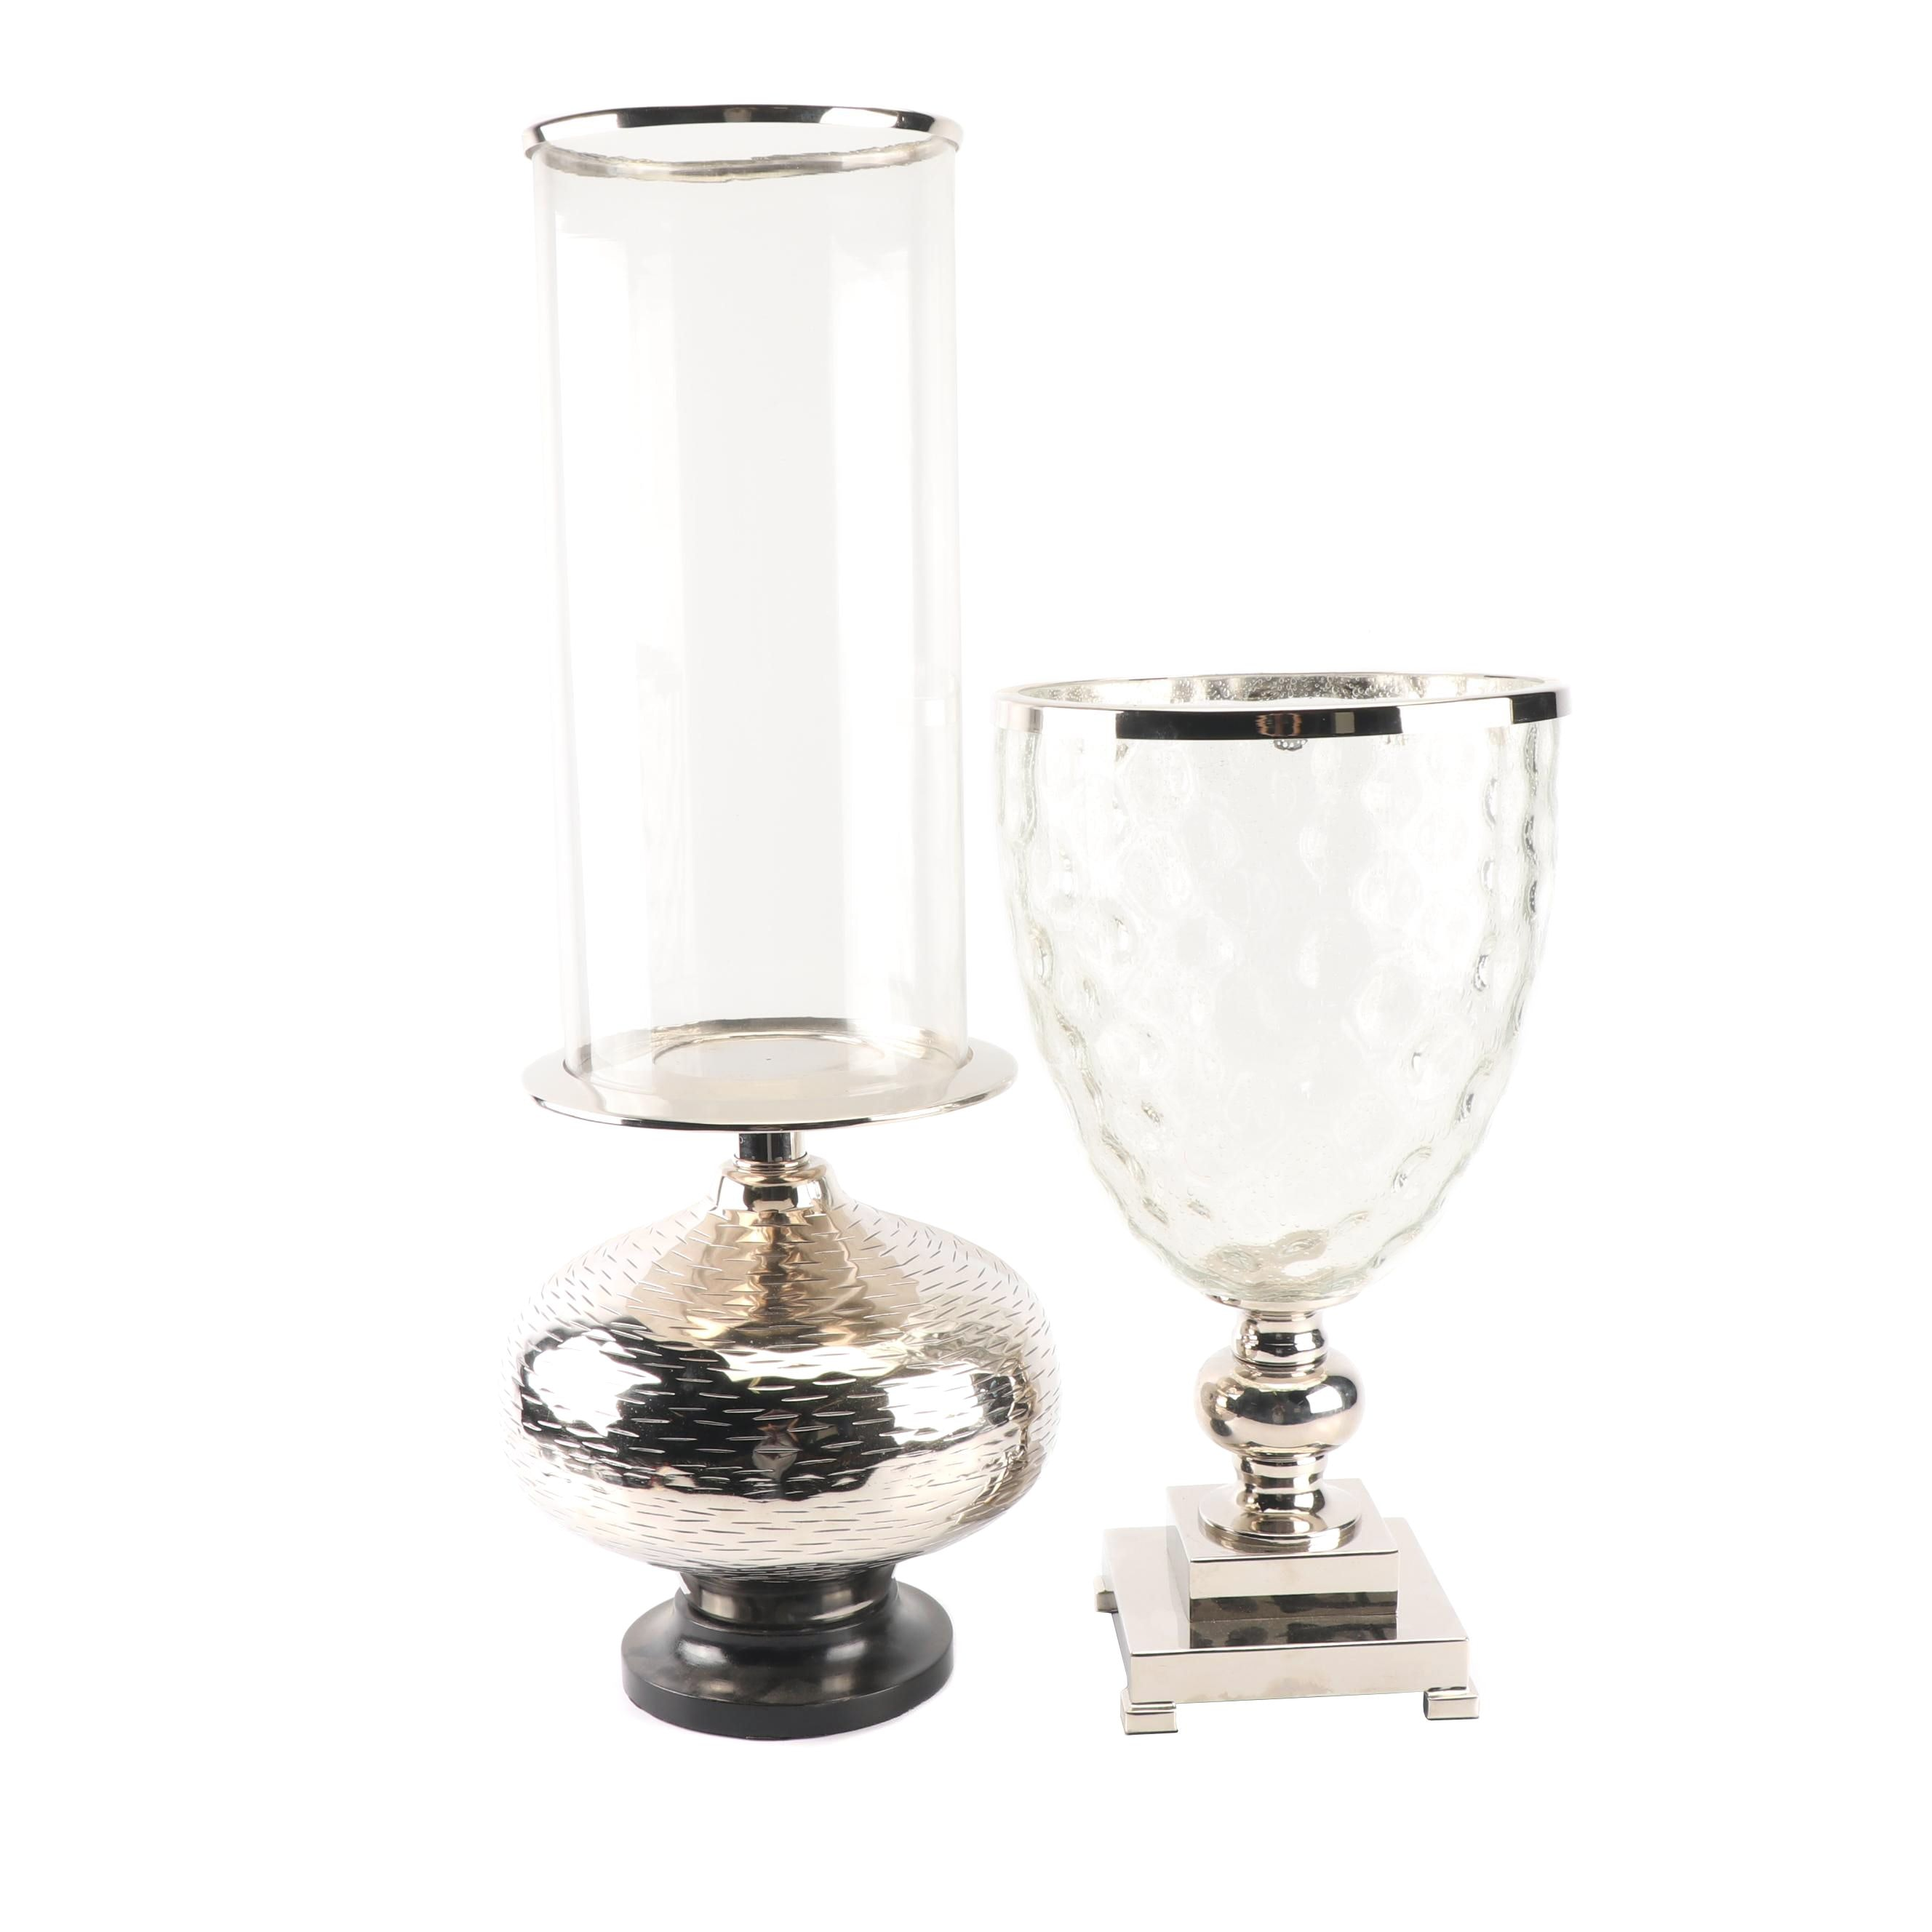 Contemporary Chrome and Glass Candle Hurricanes